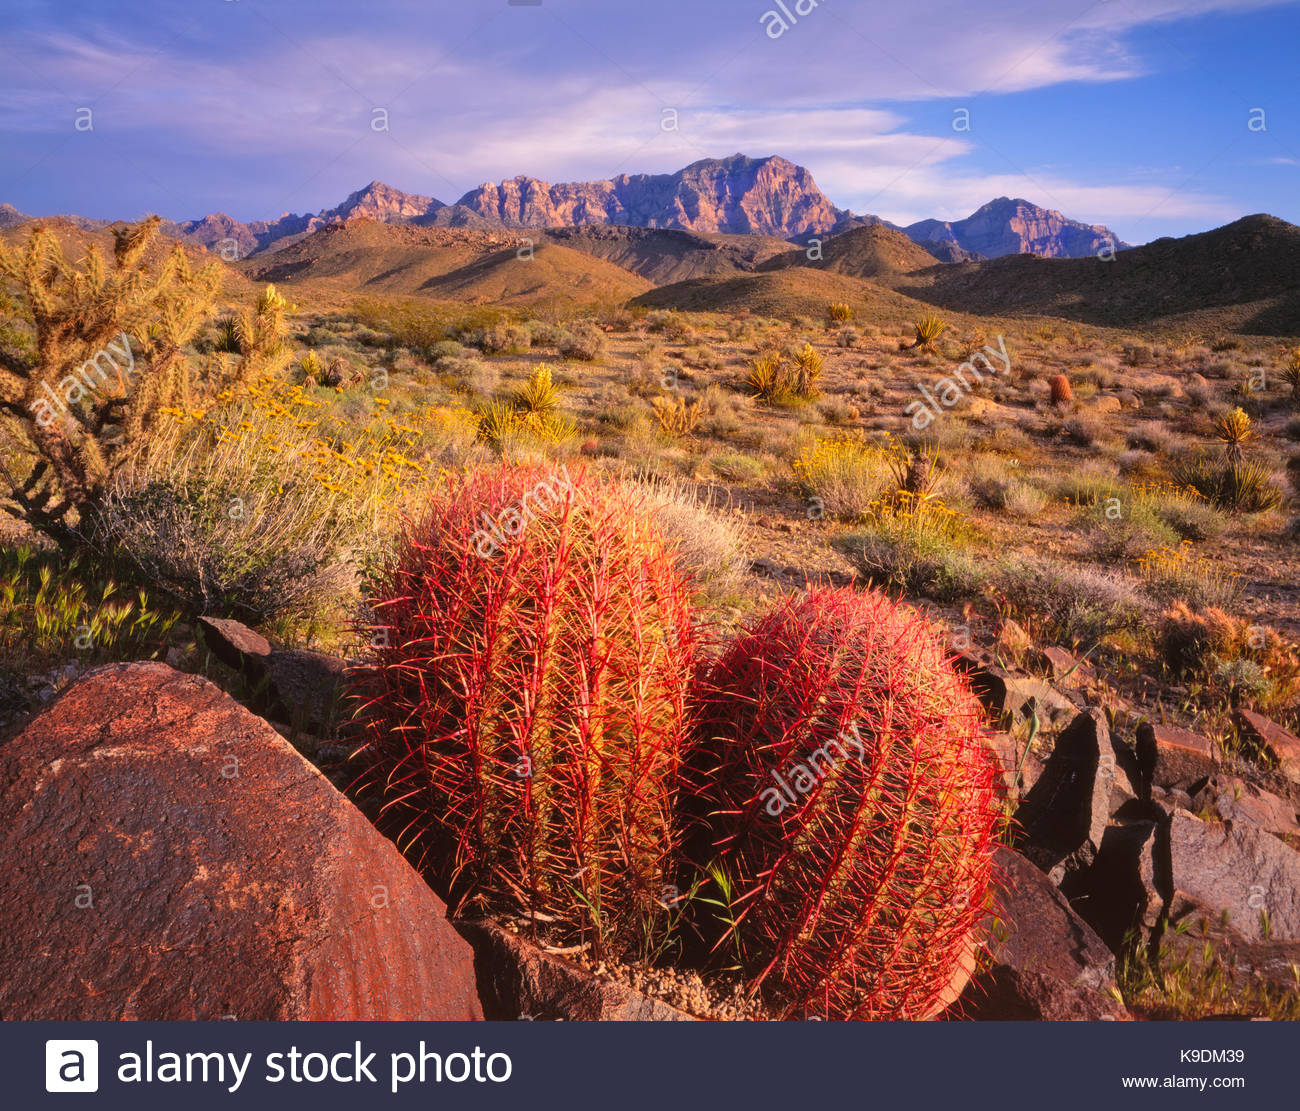 Barrel Cactus and theProvidence Mountains at Sunset,Mojave National Preserve, California - Stock Image